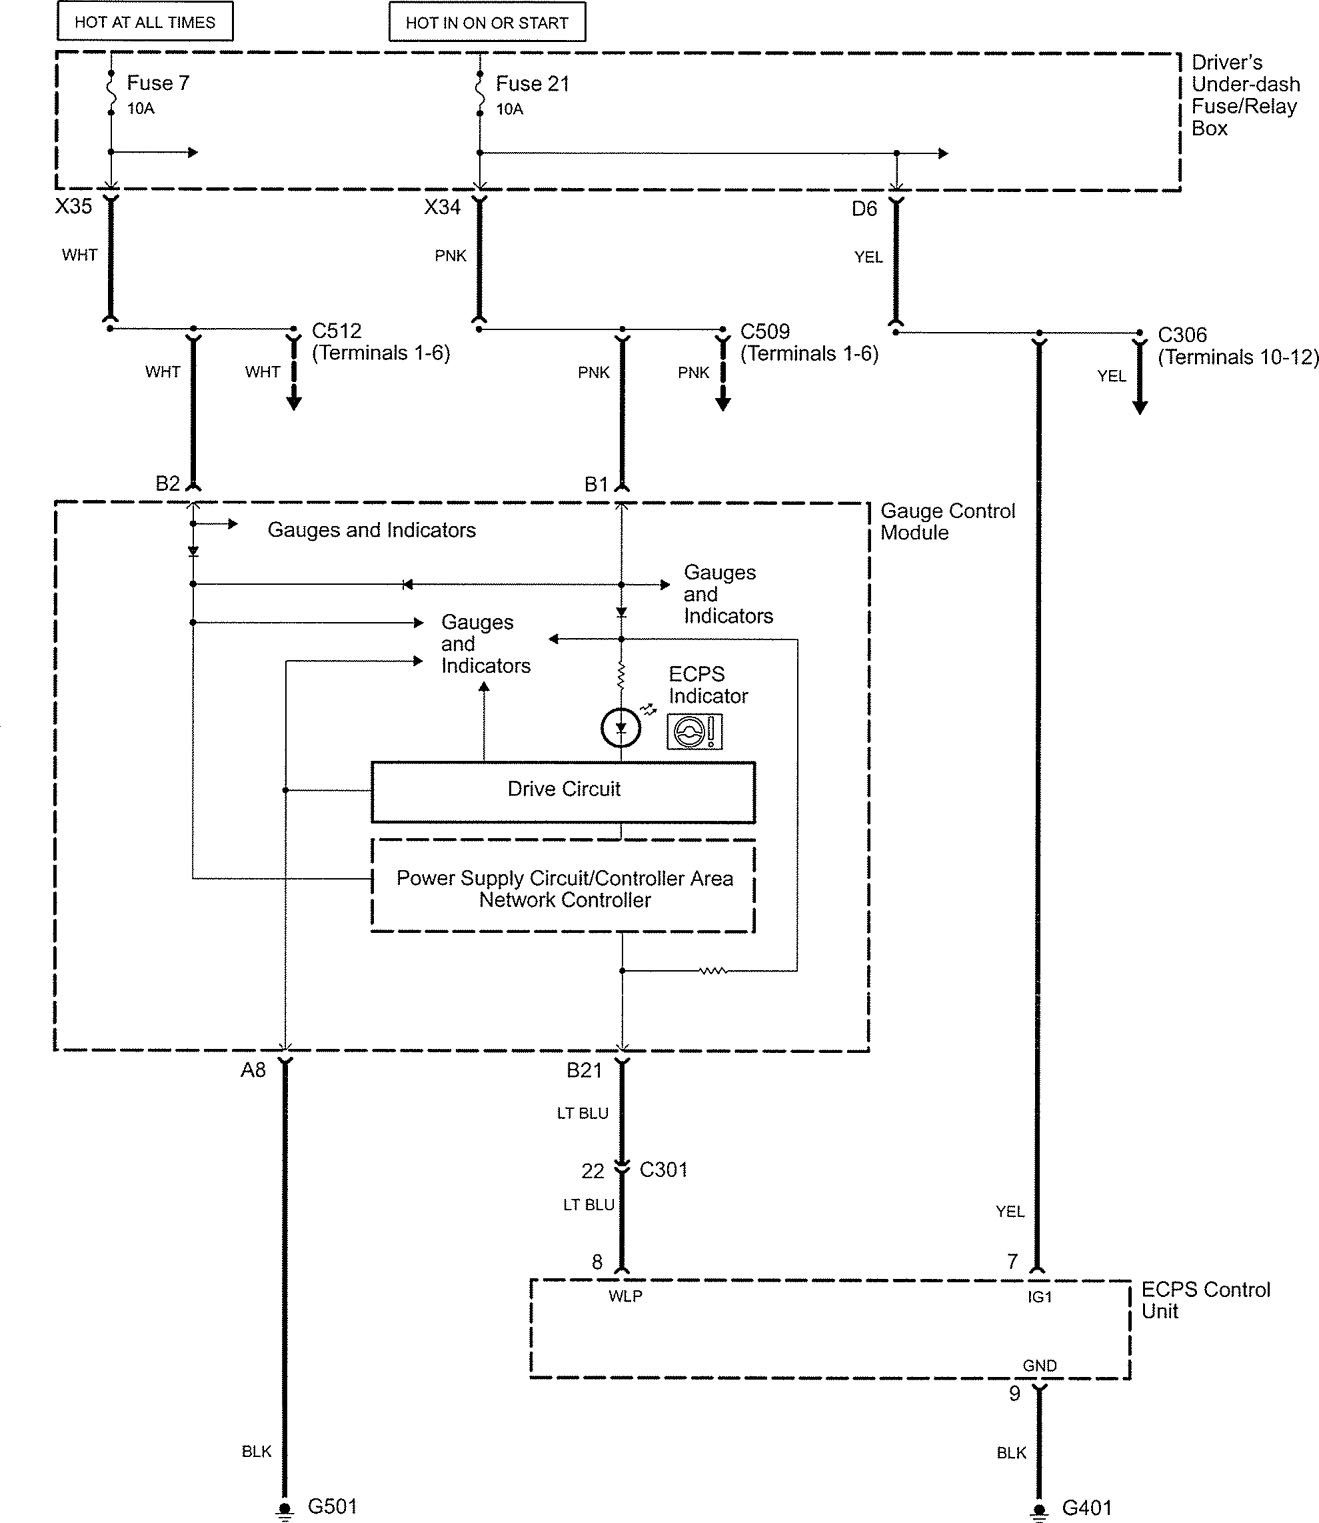 Acura Rl Wiring Diagram Fuse Panel Drivers Side likewise Dsc as well B F Cc moreover Acura Tl Wiring Diagram Fuse Panel likewise Acura Tl Car Stereo  lifier Wiring Diagram Harness. on 2005 acura rl wiring diagram